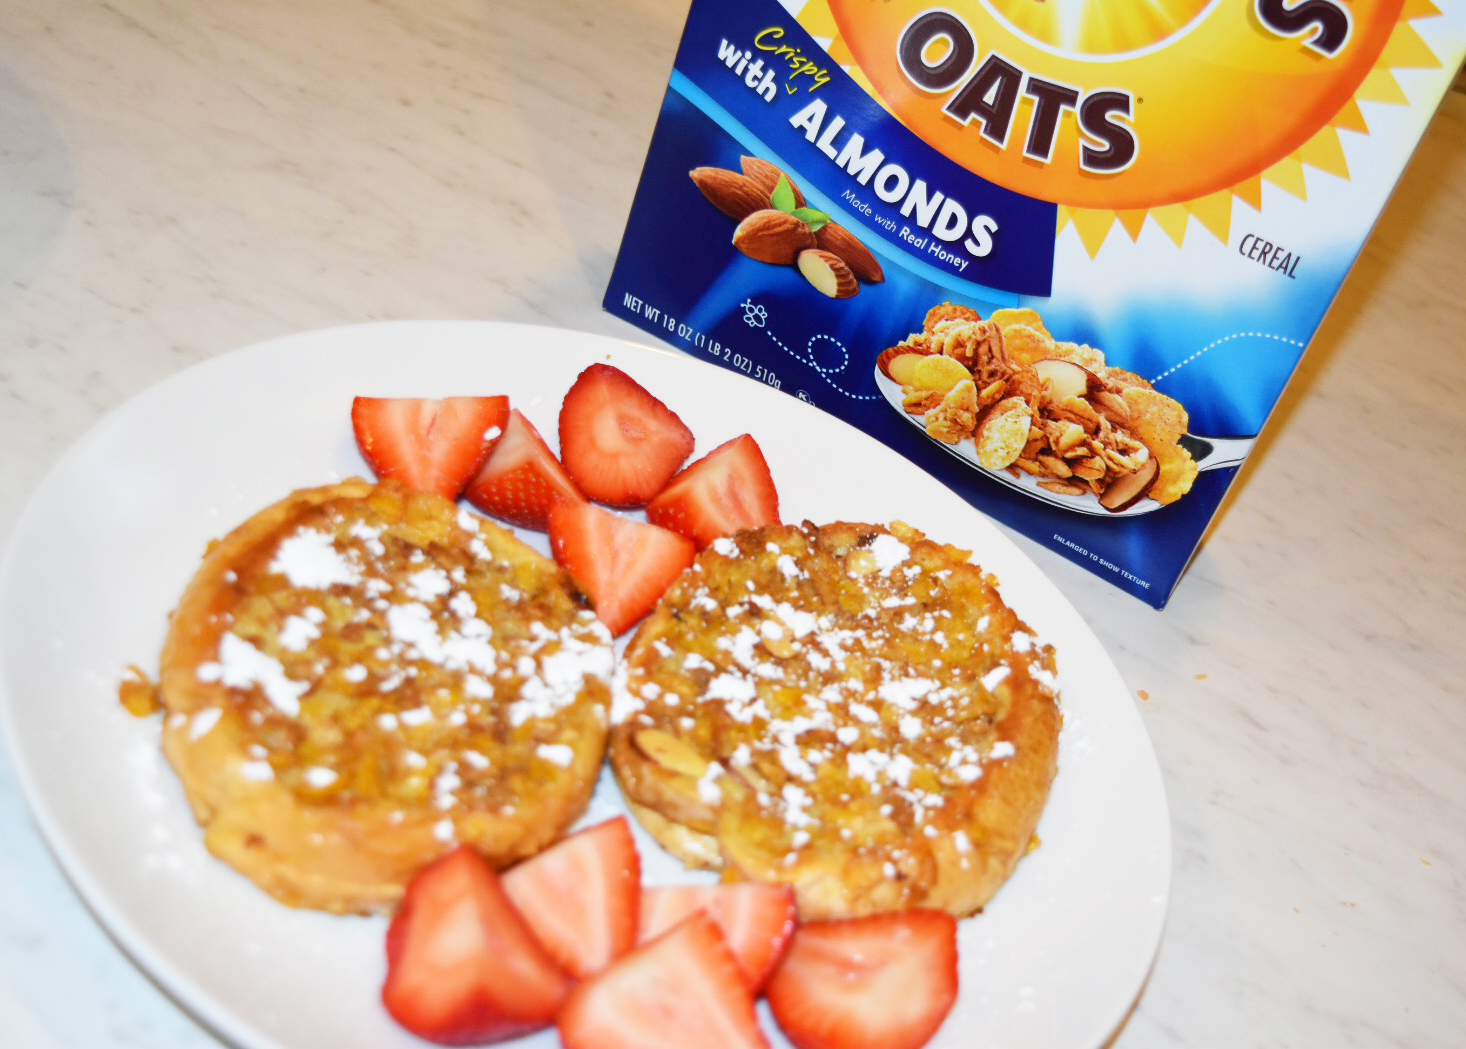 Honey Bunches of Oats 12